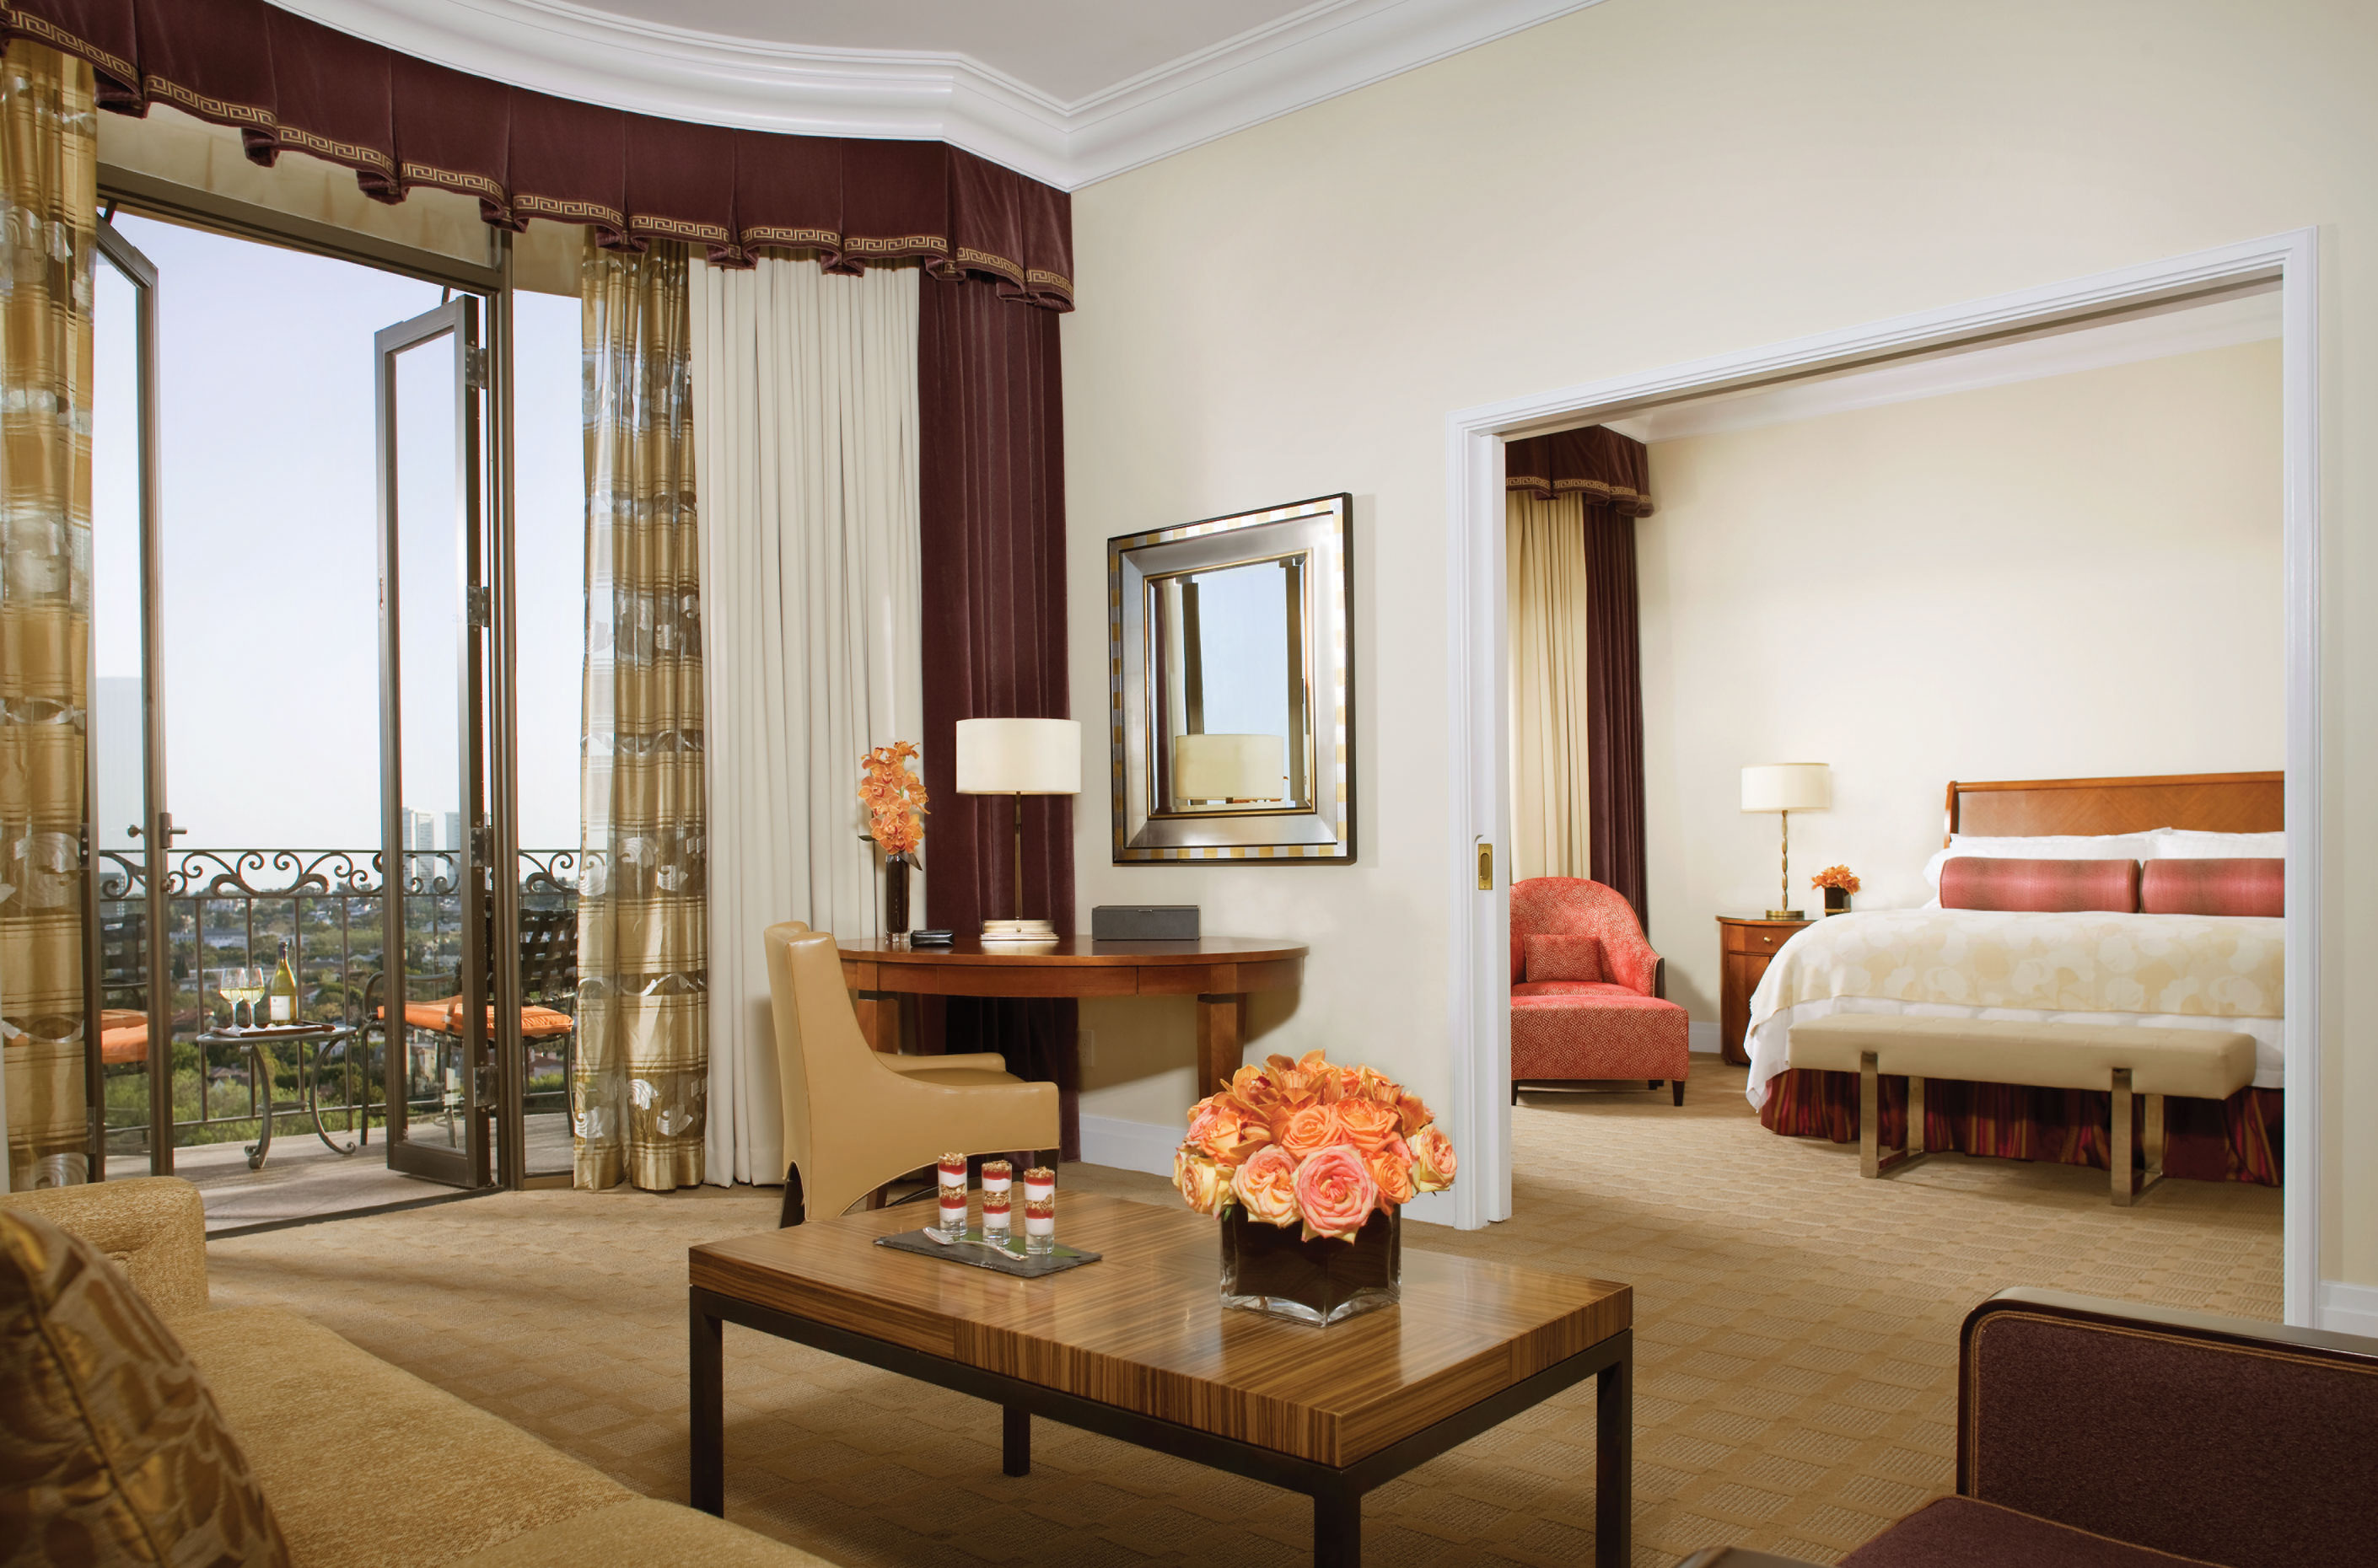 The Beverly Wilshire's signature one-bedroom suite averages around $2,000 per night.